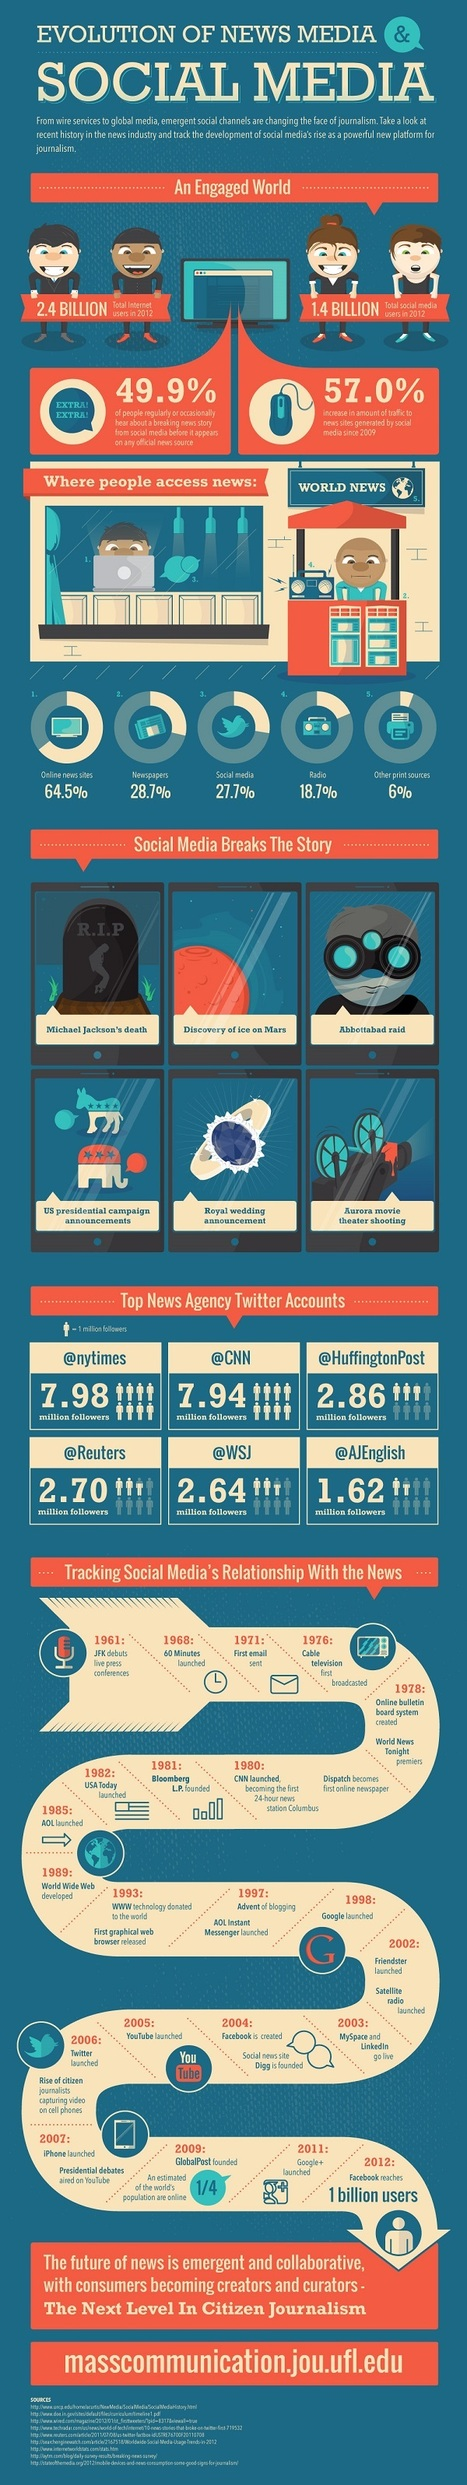 How Social Media Changed the Way We Consume News [Infographic] | ToxNetLab's Blog | Scoop.it